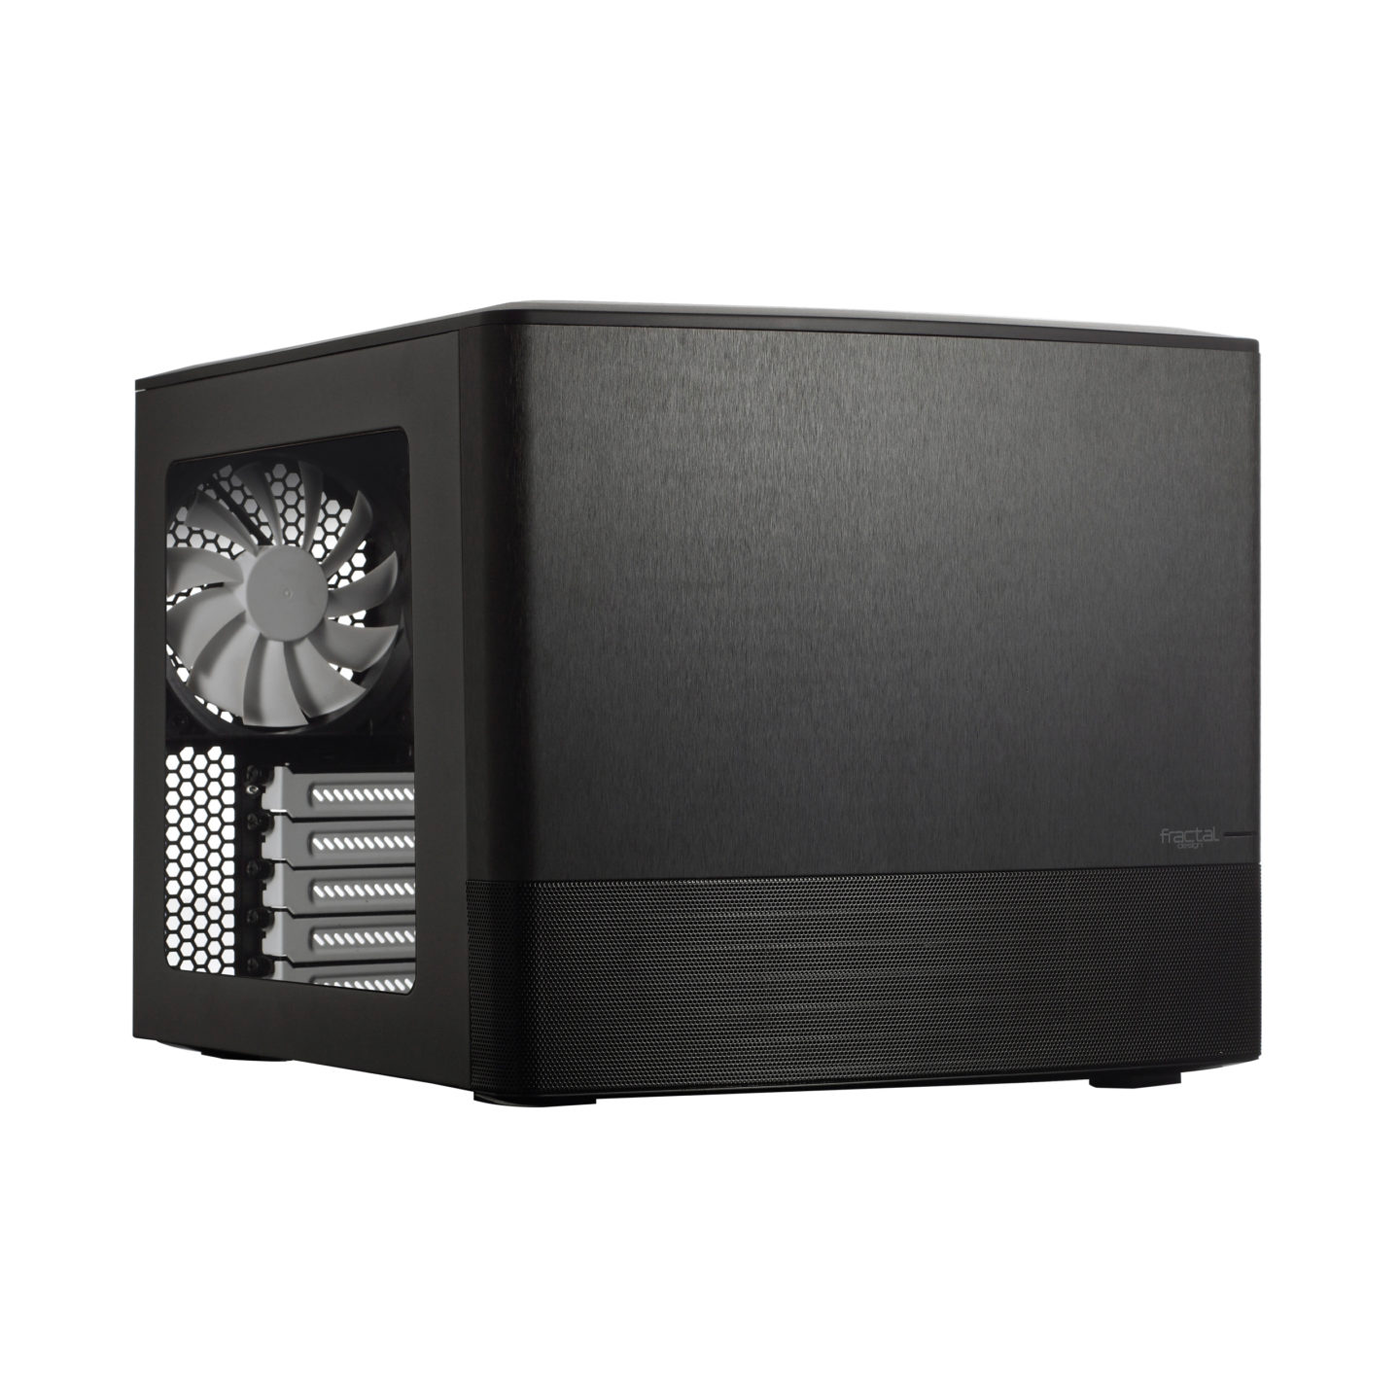 An image of the Fractal Node 804 PC case on a white background